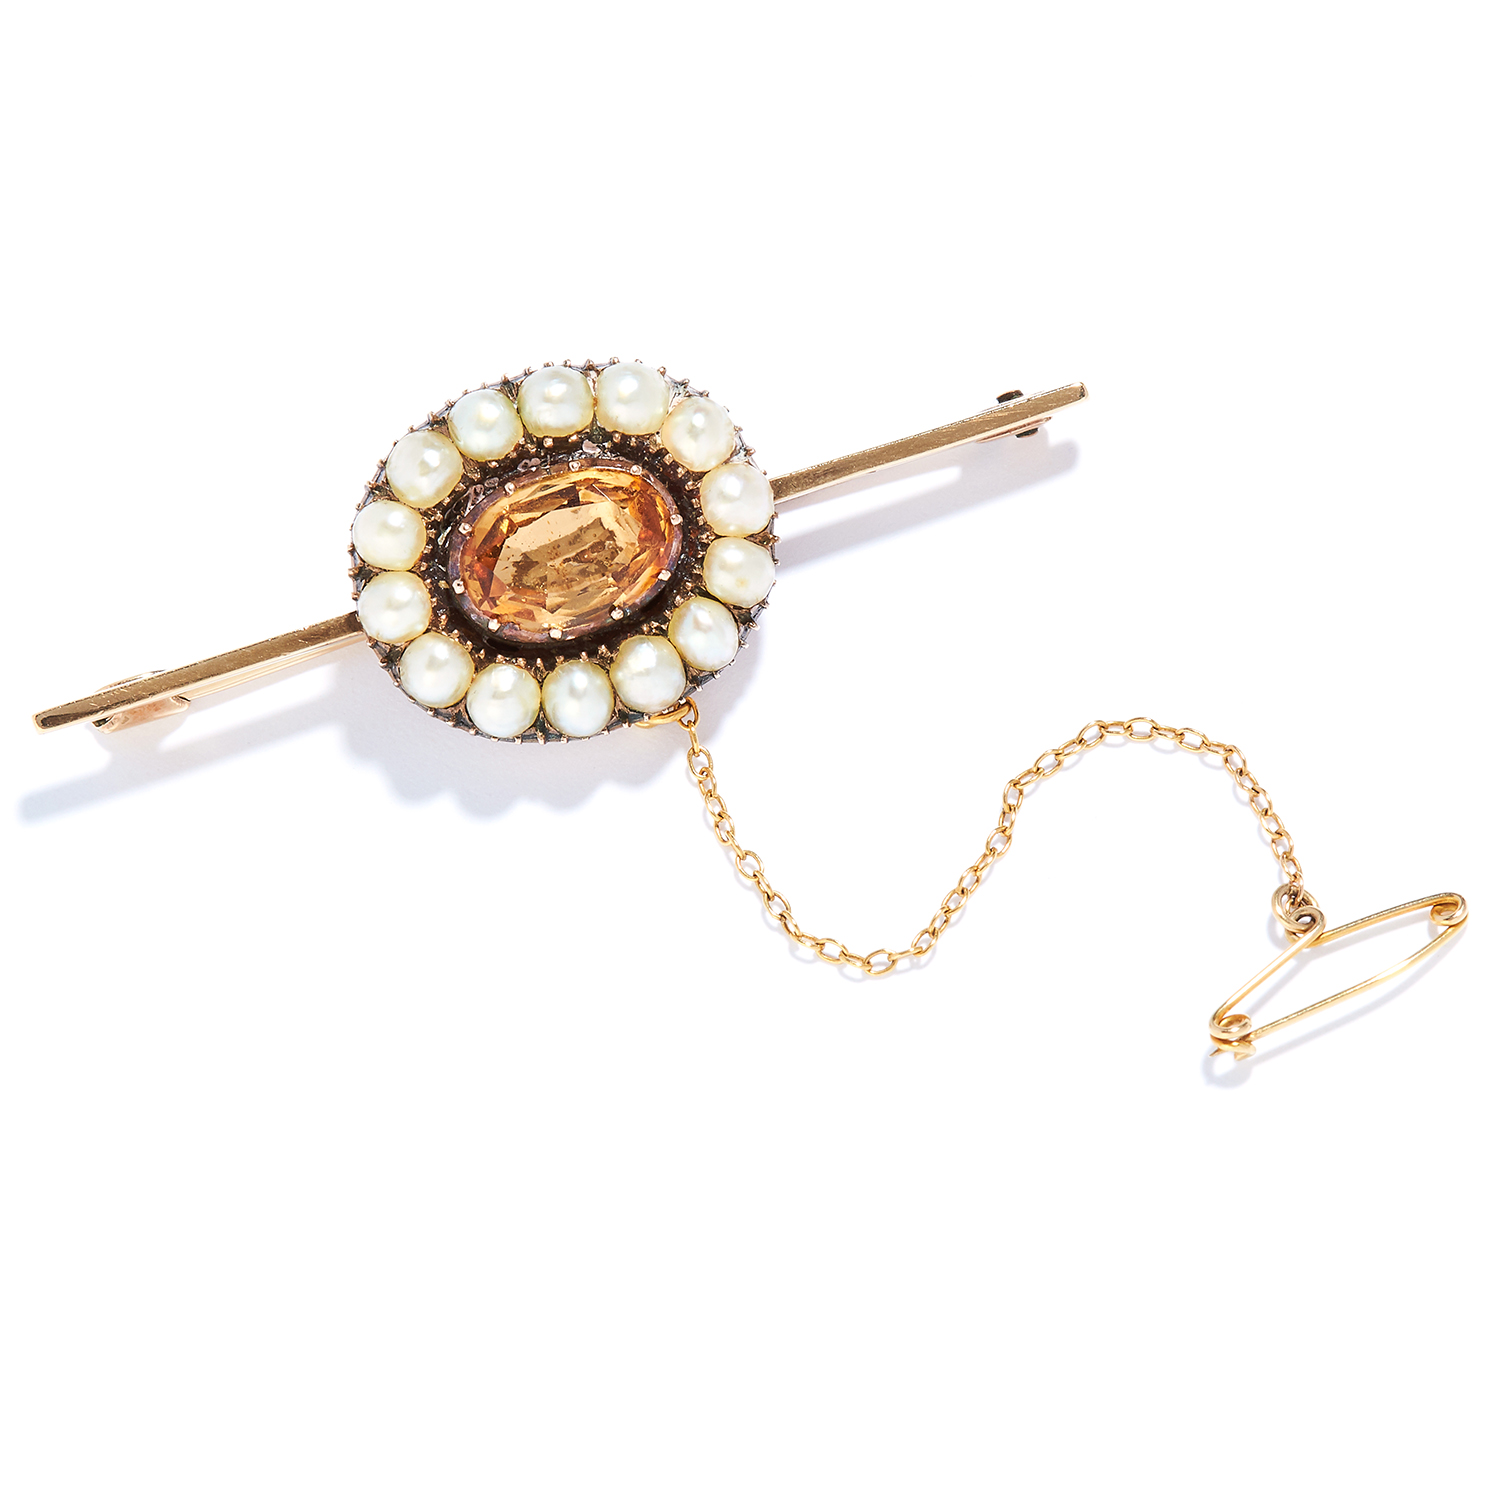 ANTIQUE IMPERIAL TOPAZ AND PEARL BAR BROOCH in high carat yellow gold, set with an oval cut topaz in